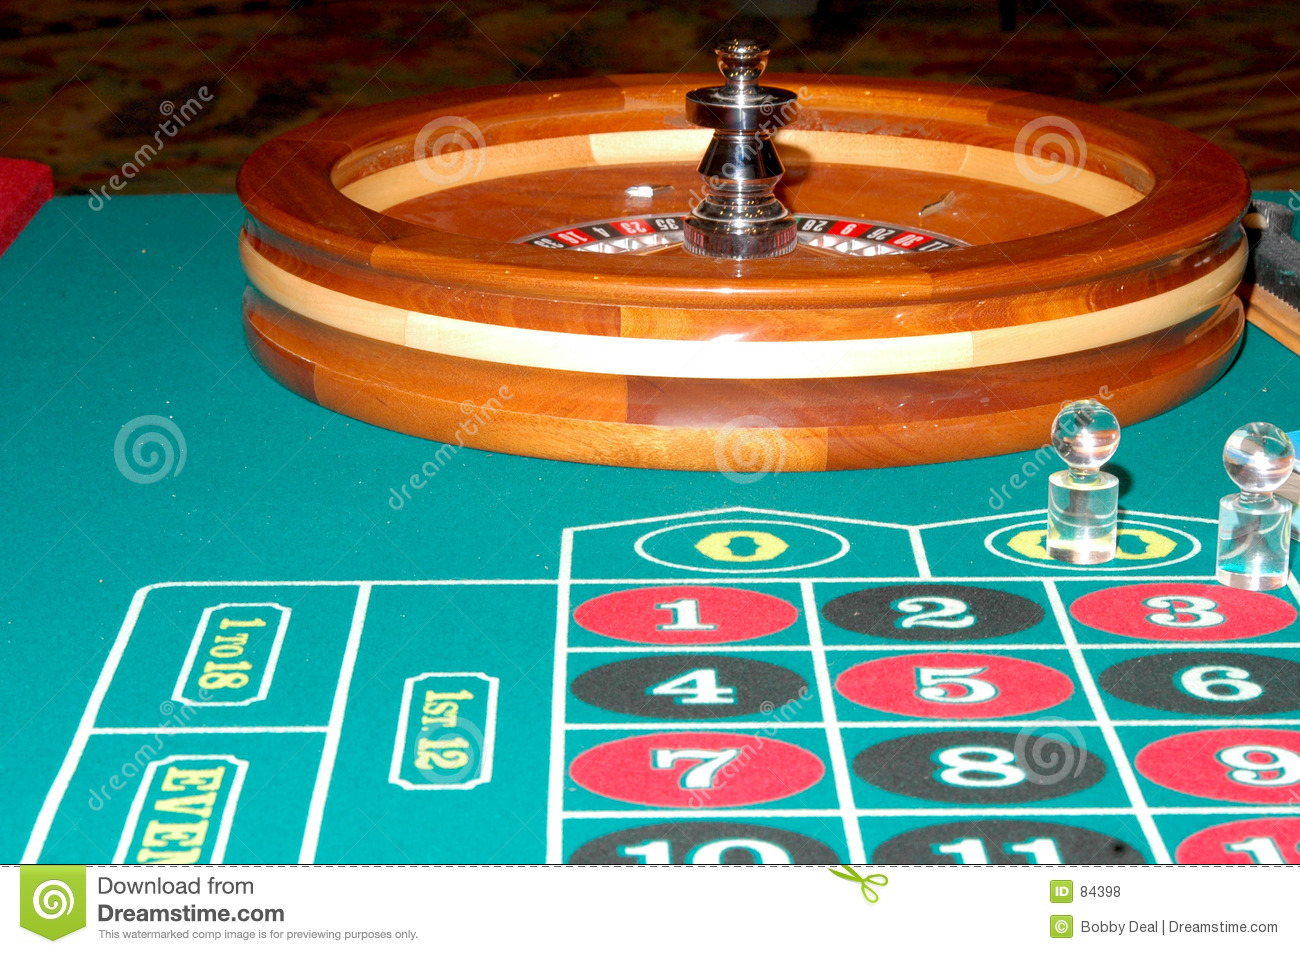 Roulette table generator